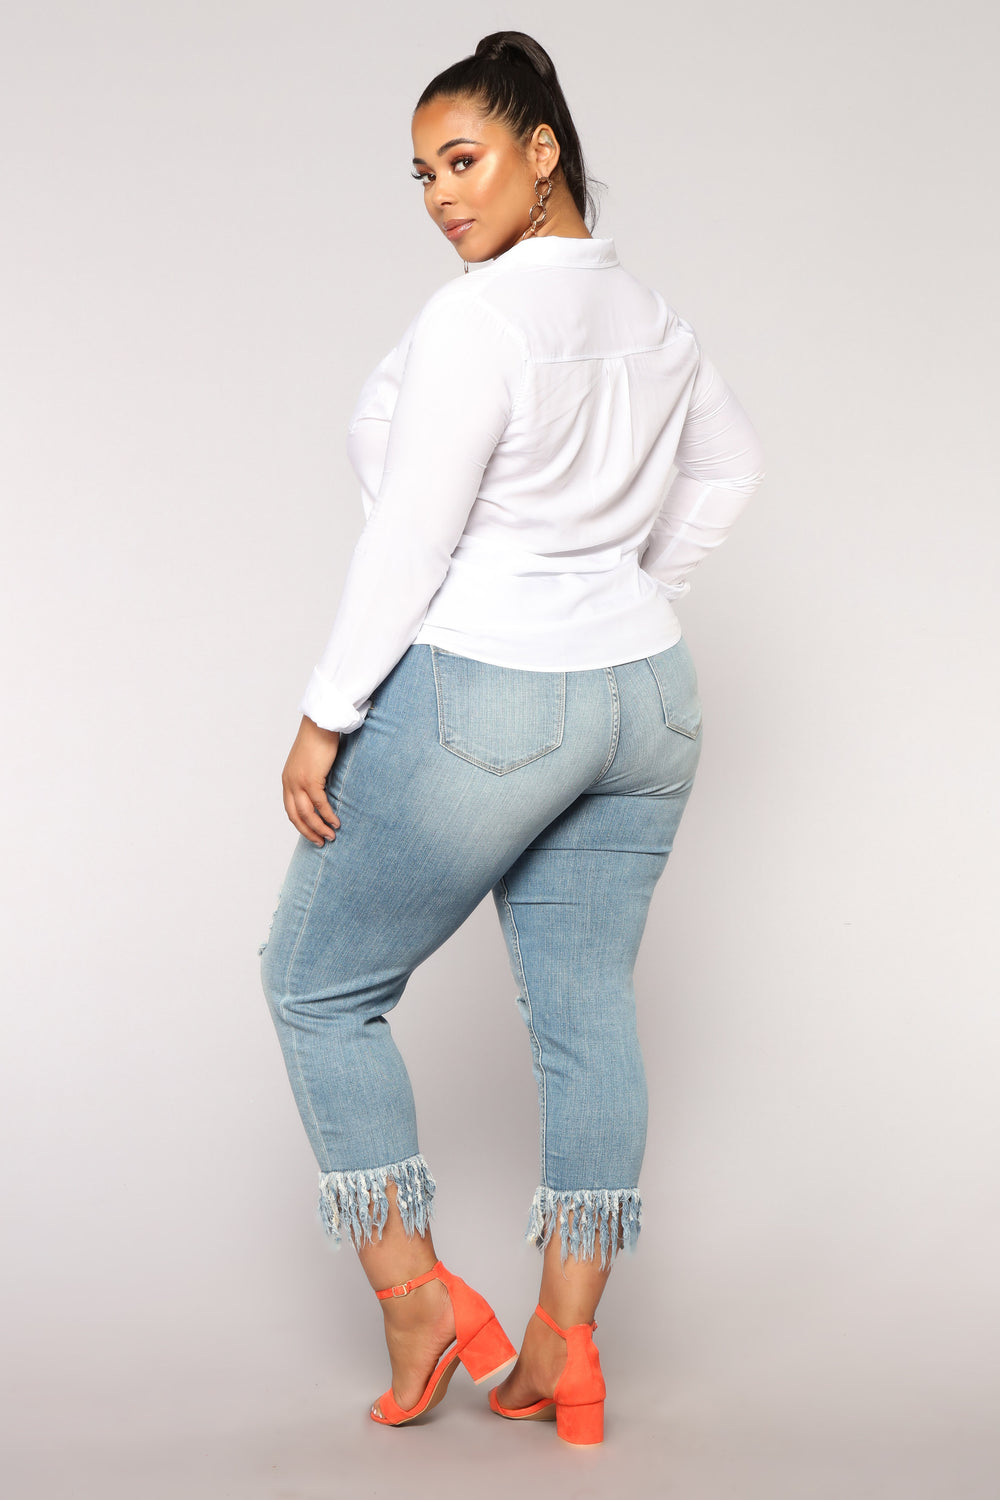 Shipwrecked High Rise Distressed Jeans II - Light Blue Wash